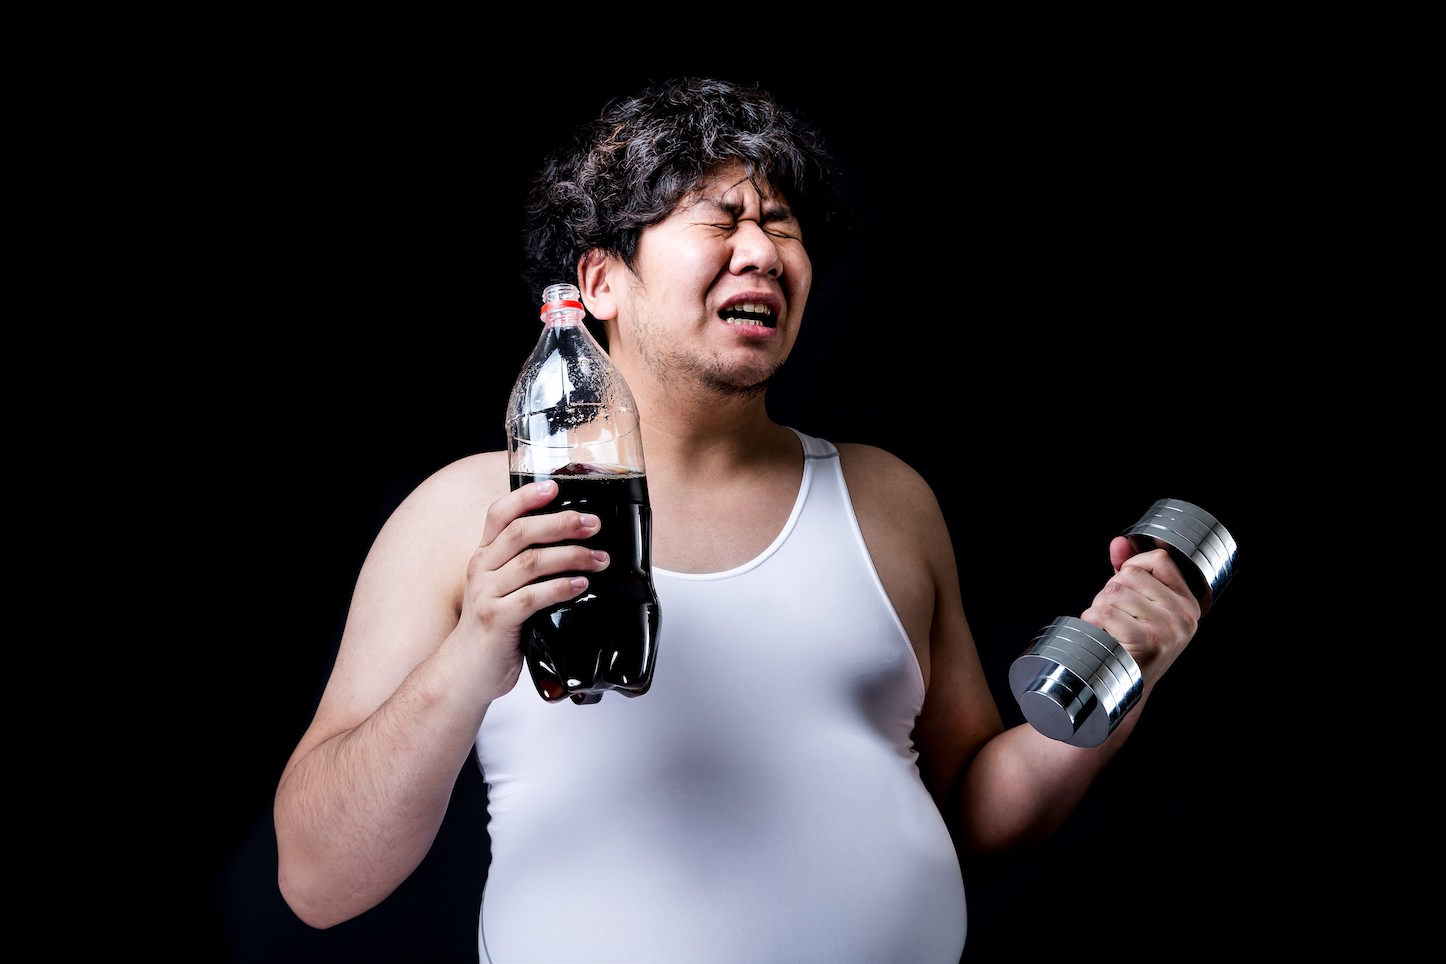 Diet cola training